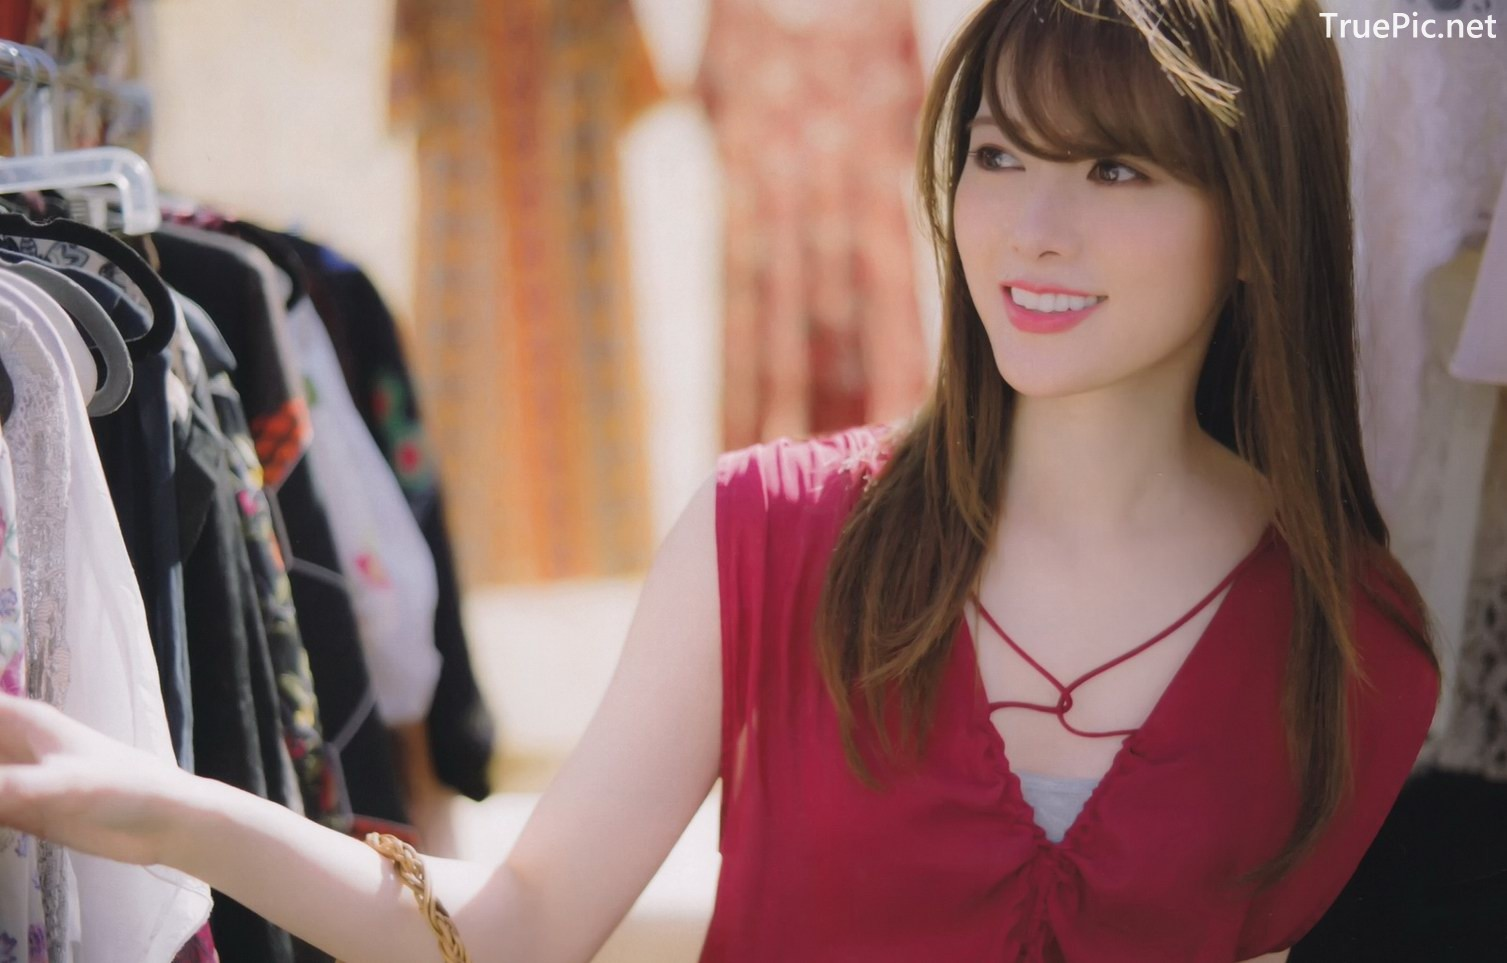 Image Japanese Singer And Model - Mai Shiraishi - Charming Beauty Of Angel - TruePic.net - Picture-1